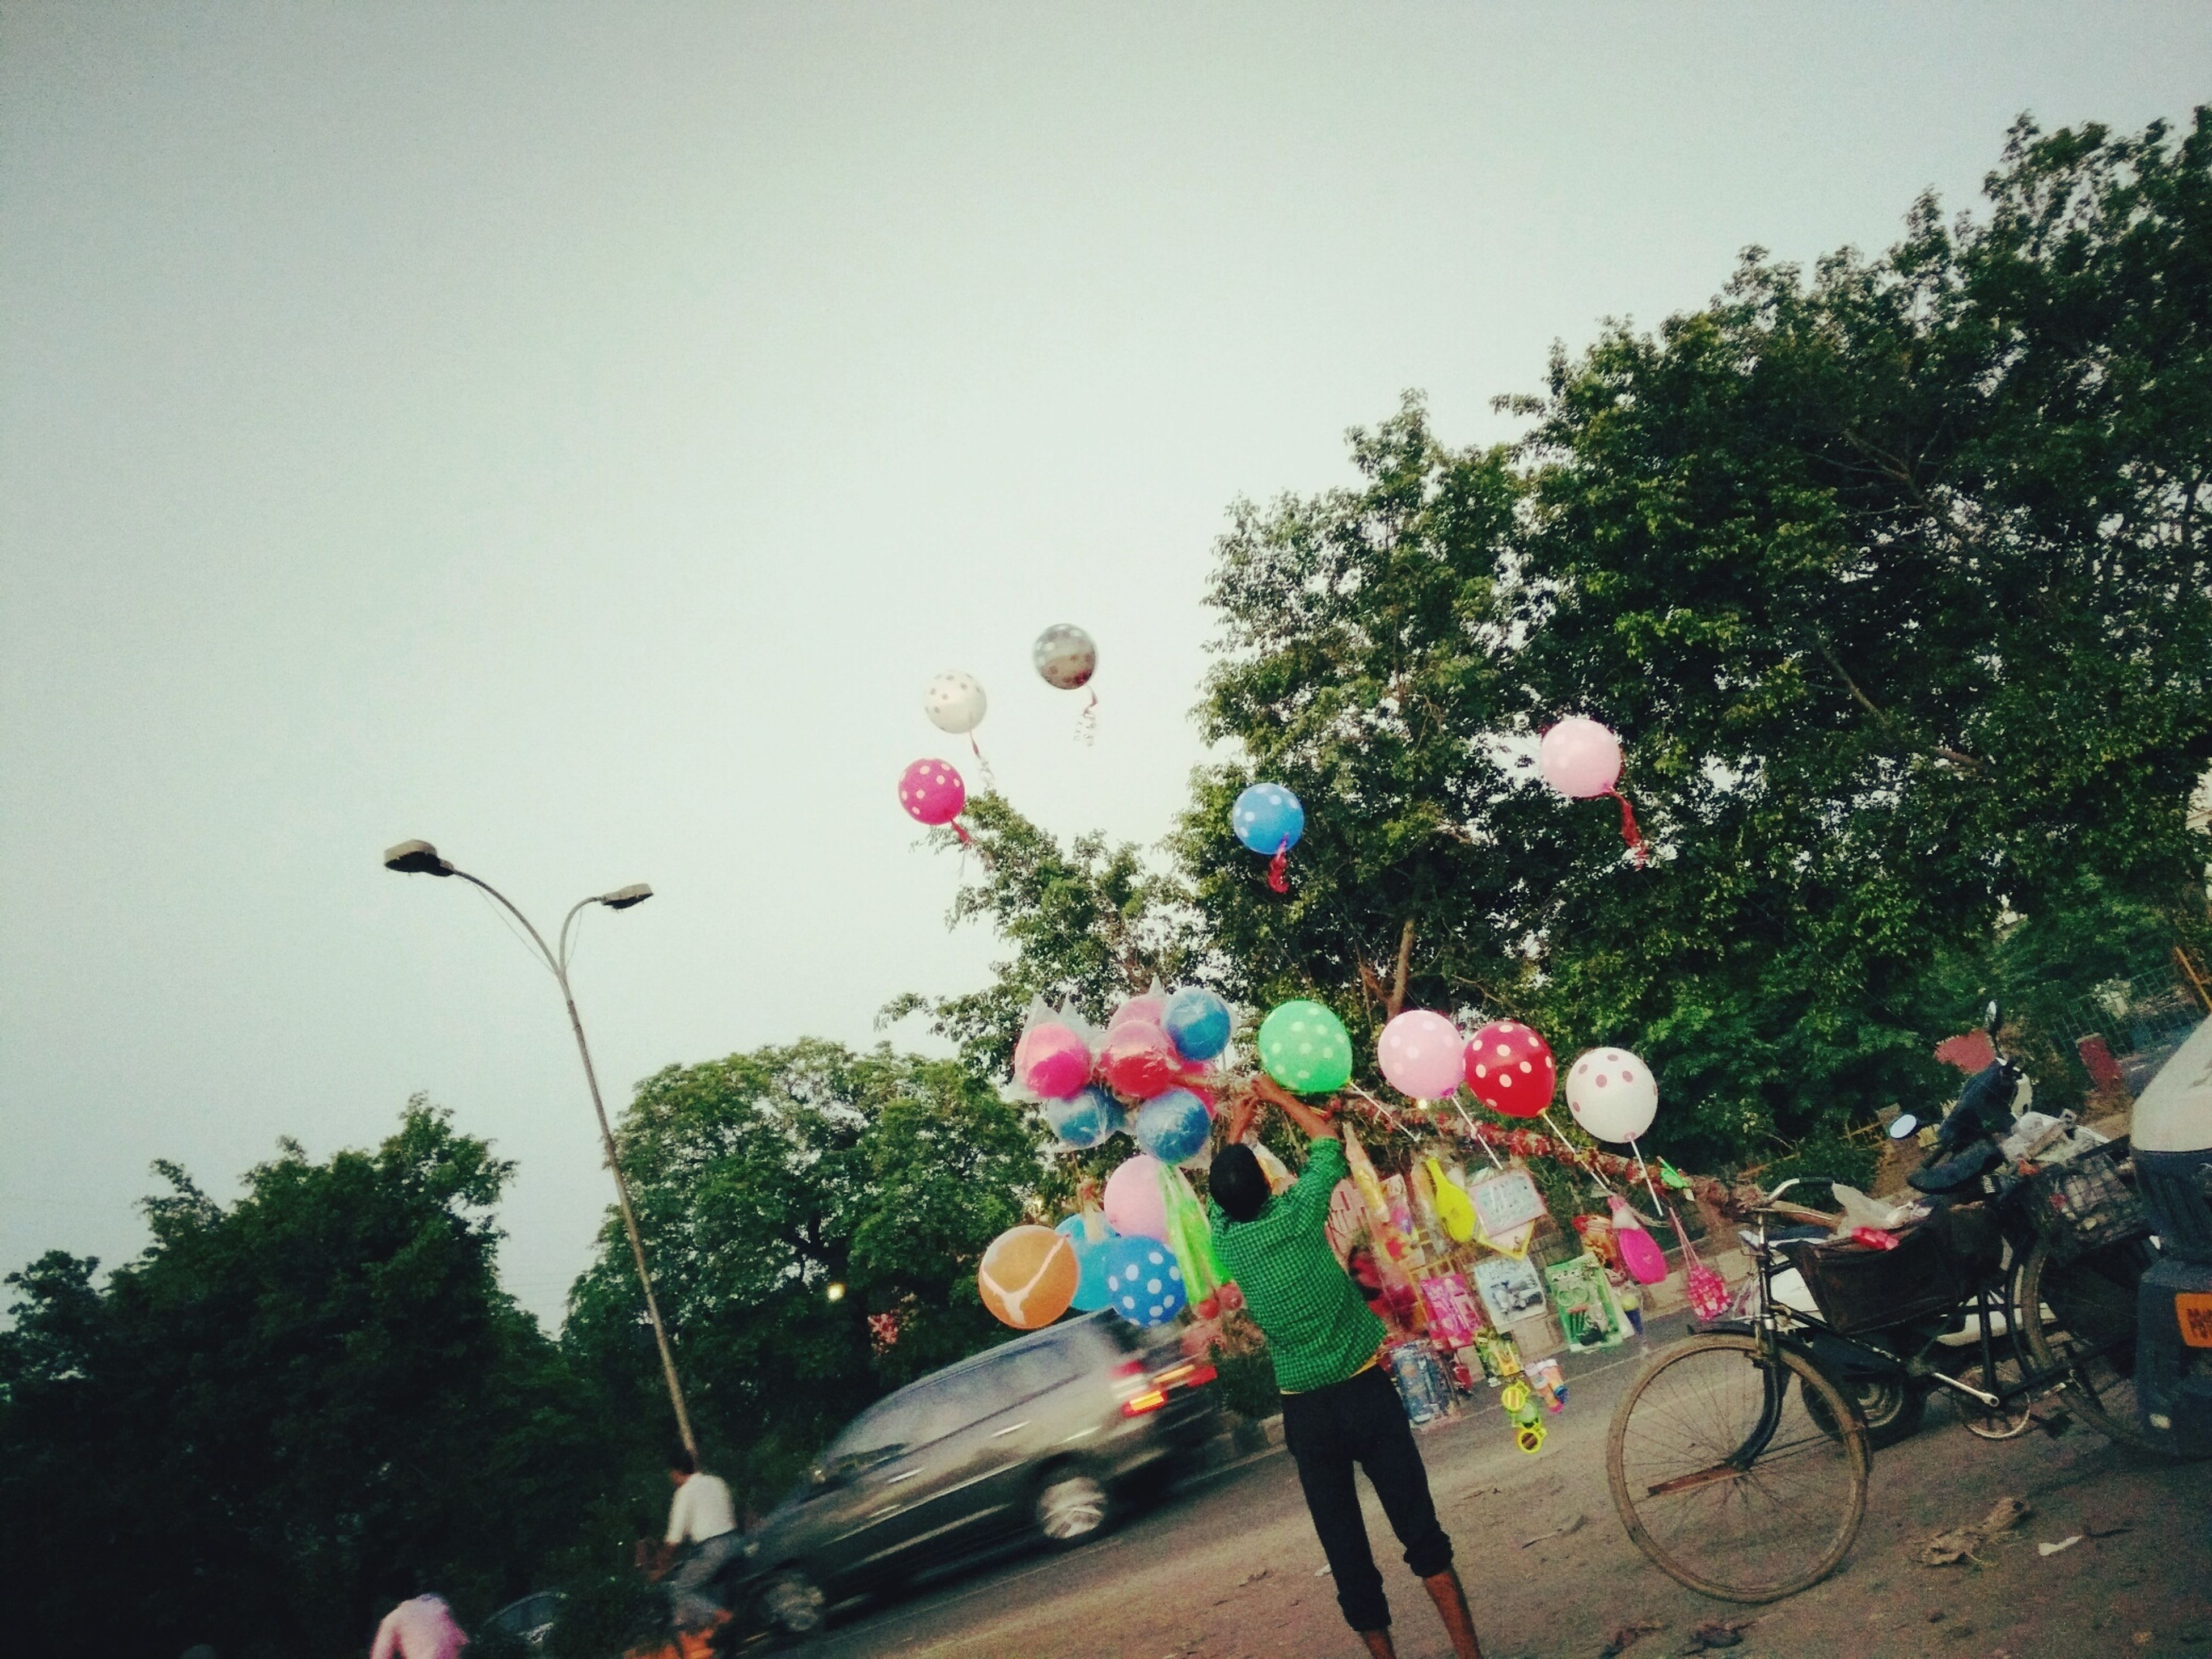 Balloon Man Photography His Life Like Balloon The Week Of Eyeem Hello World Check This Out Follow City View  Taking Photos Eyemphotography The Ludhiana, India